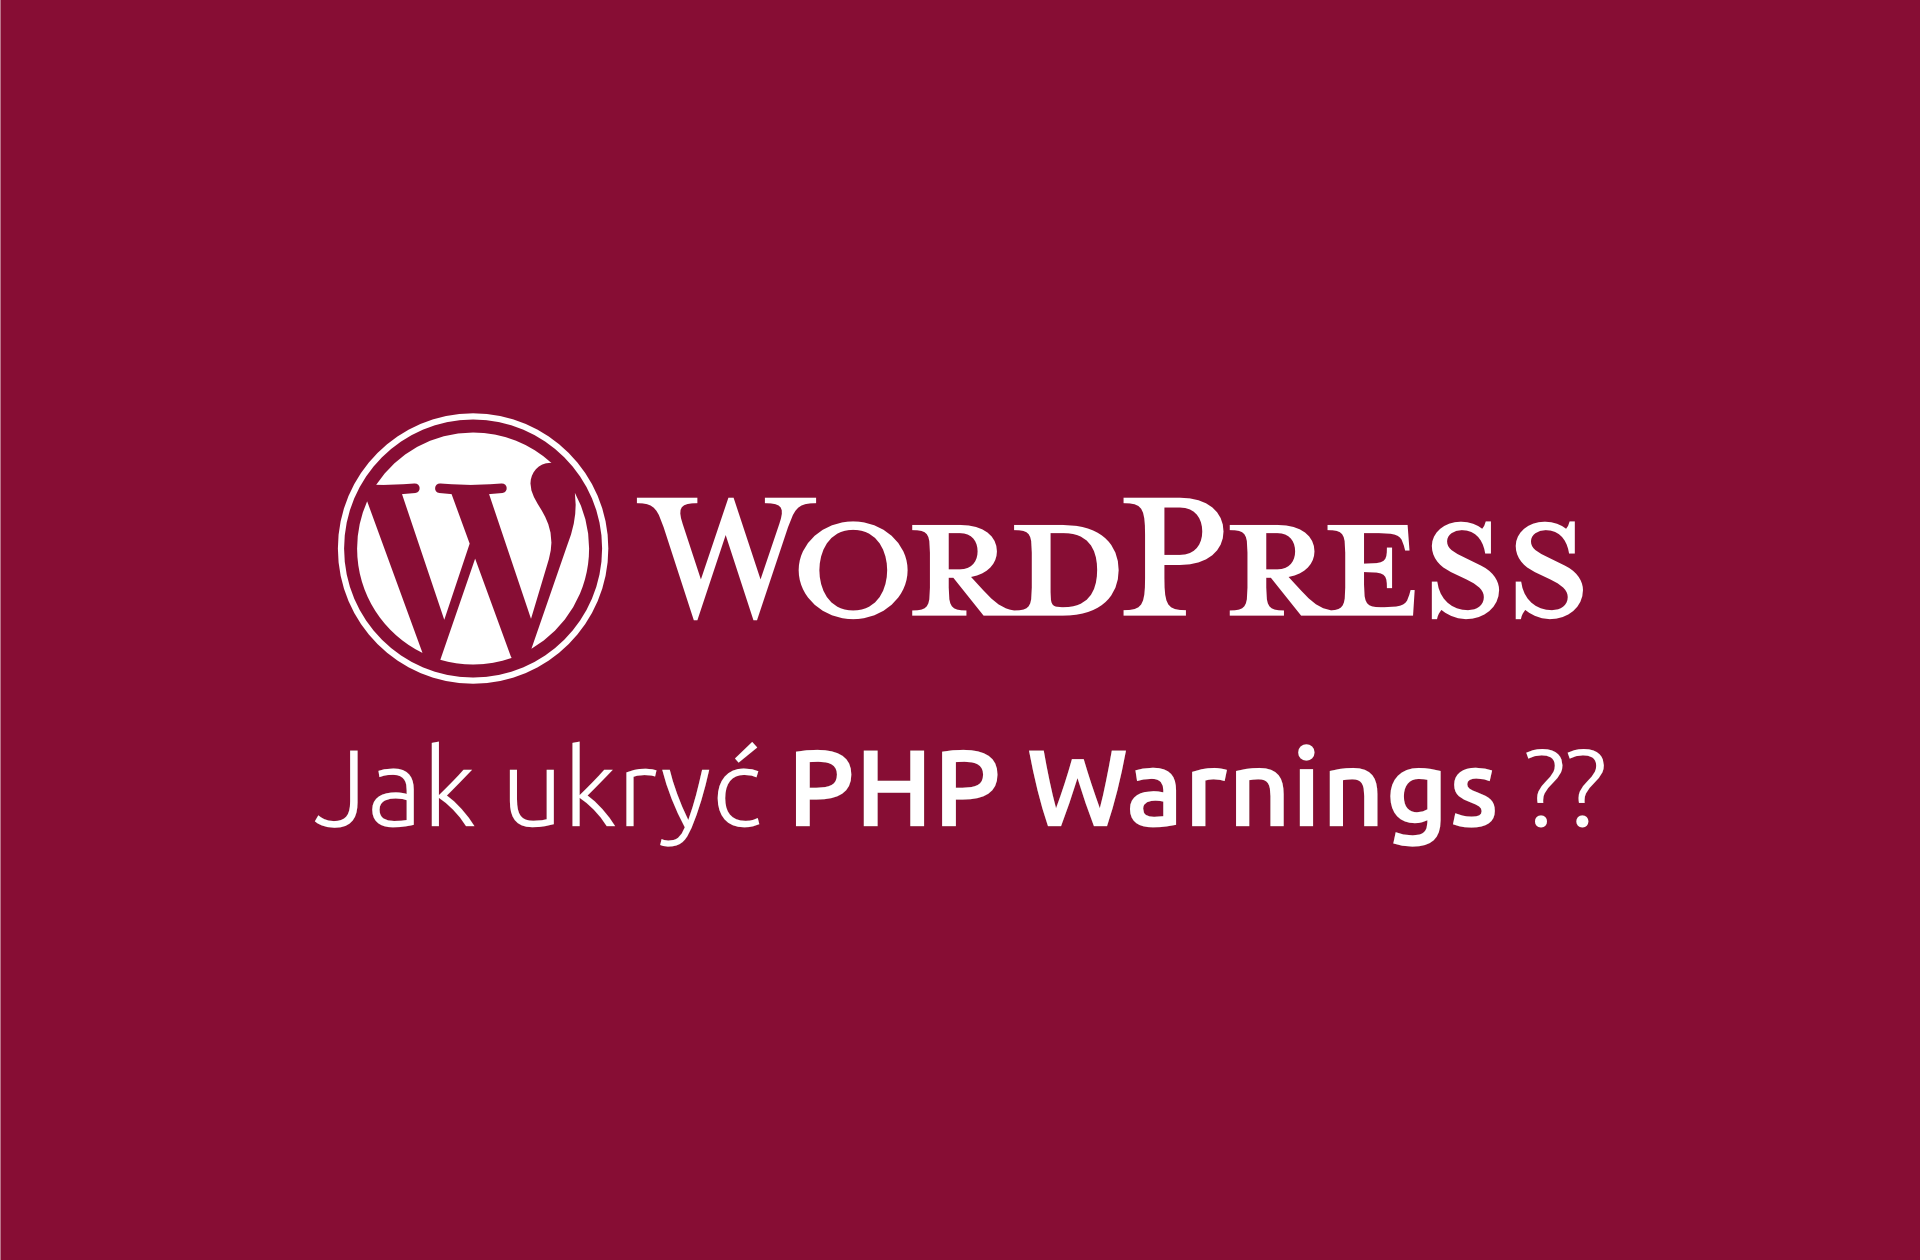 Jak ukryć PHP Warnings w WordPress